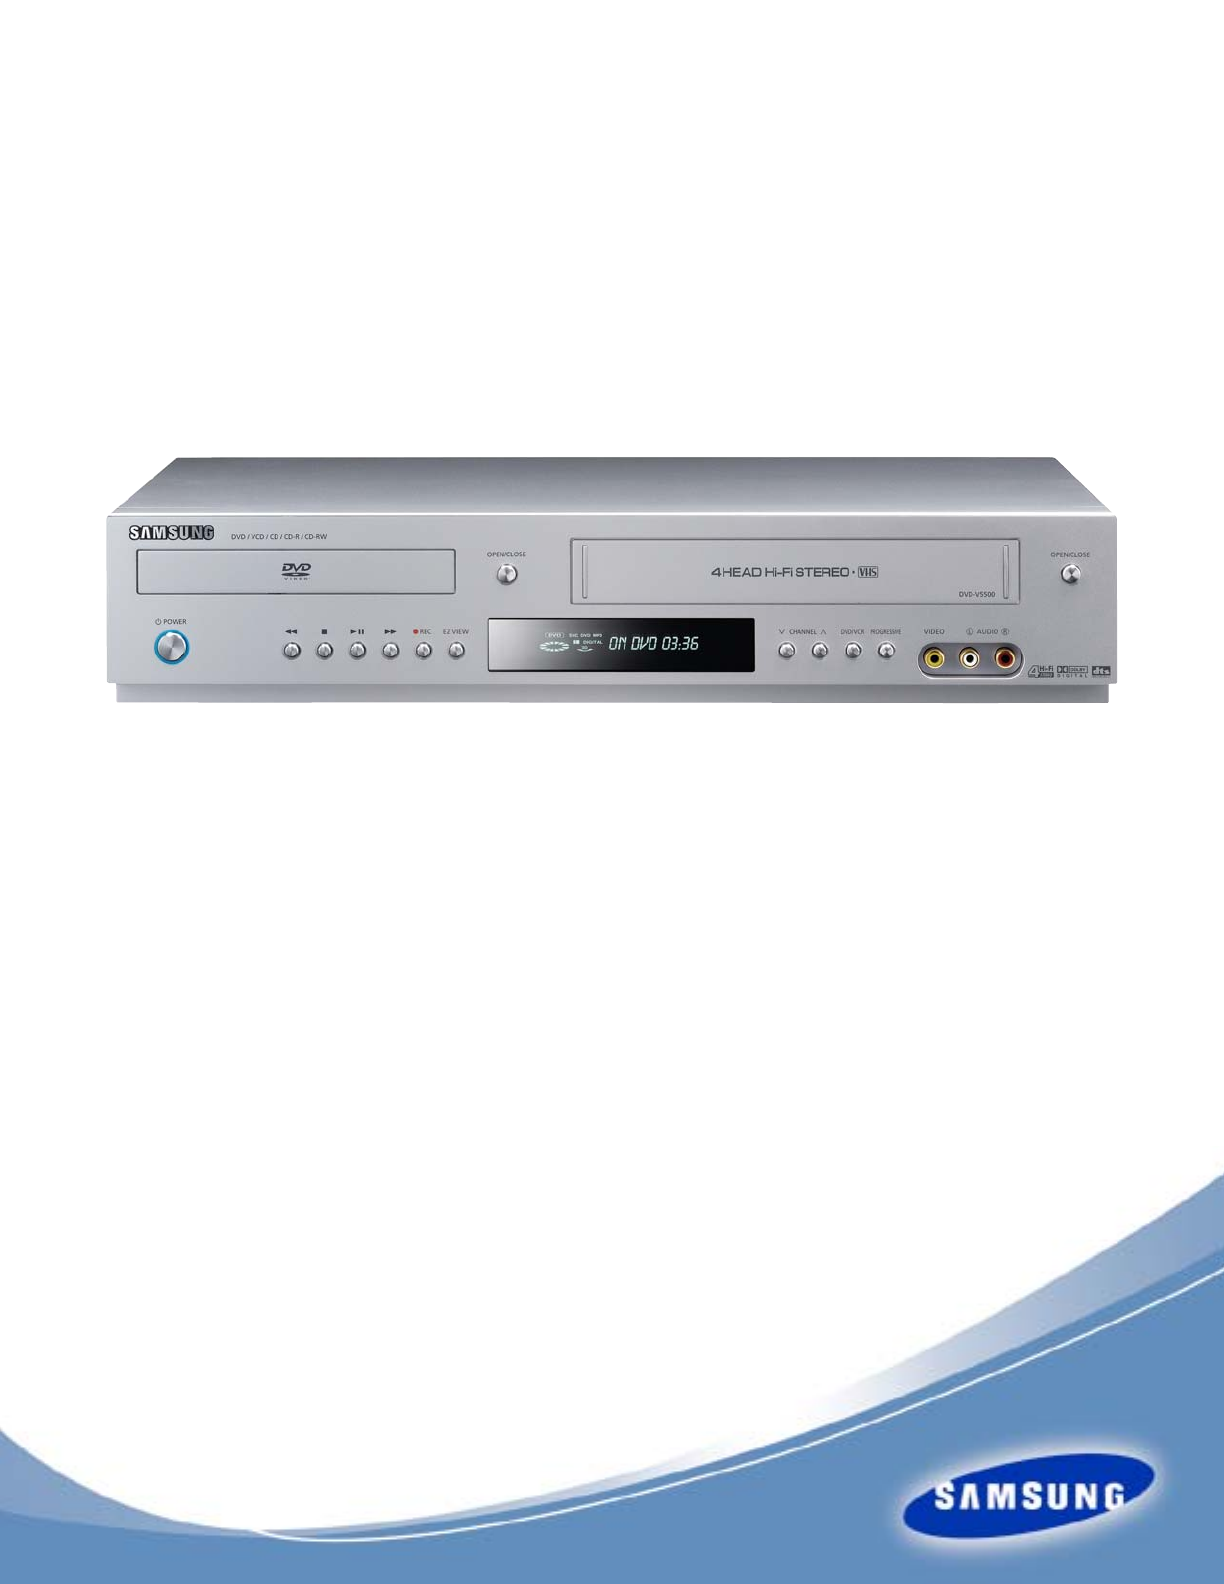 philips vcr dvd player manual free owners manual u2022 rh wordworksbysea com TV with DVD and VCR Combos 27 TV DVD VCR Combo